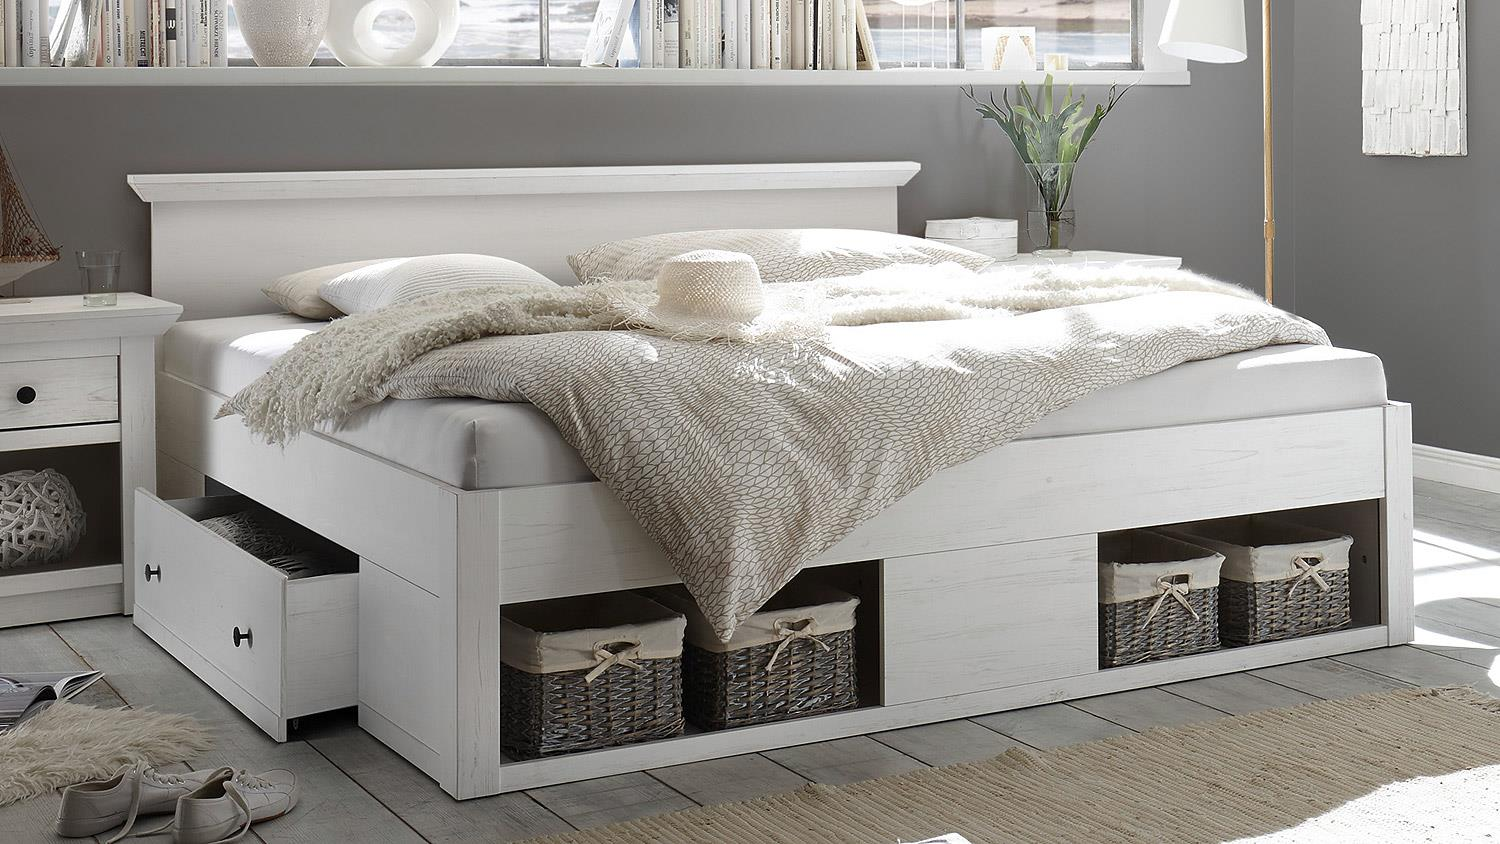 bett westerland doppelbett bettgestell f r schlafzimmer pinie wei 180. Black Bedroom Furniture Sets. Home Design Ideas